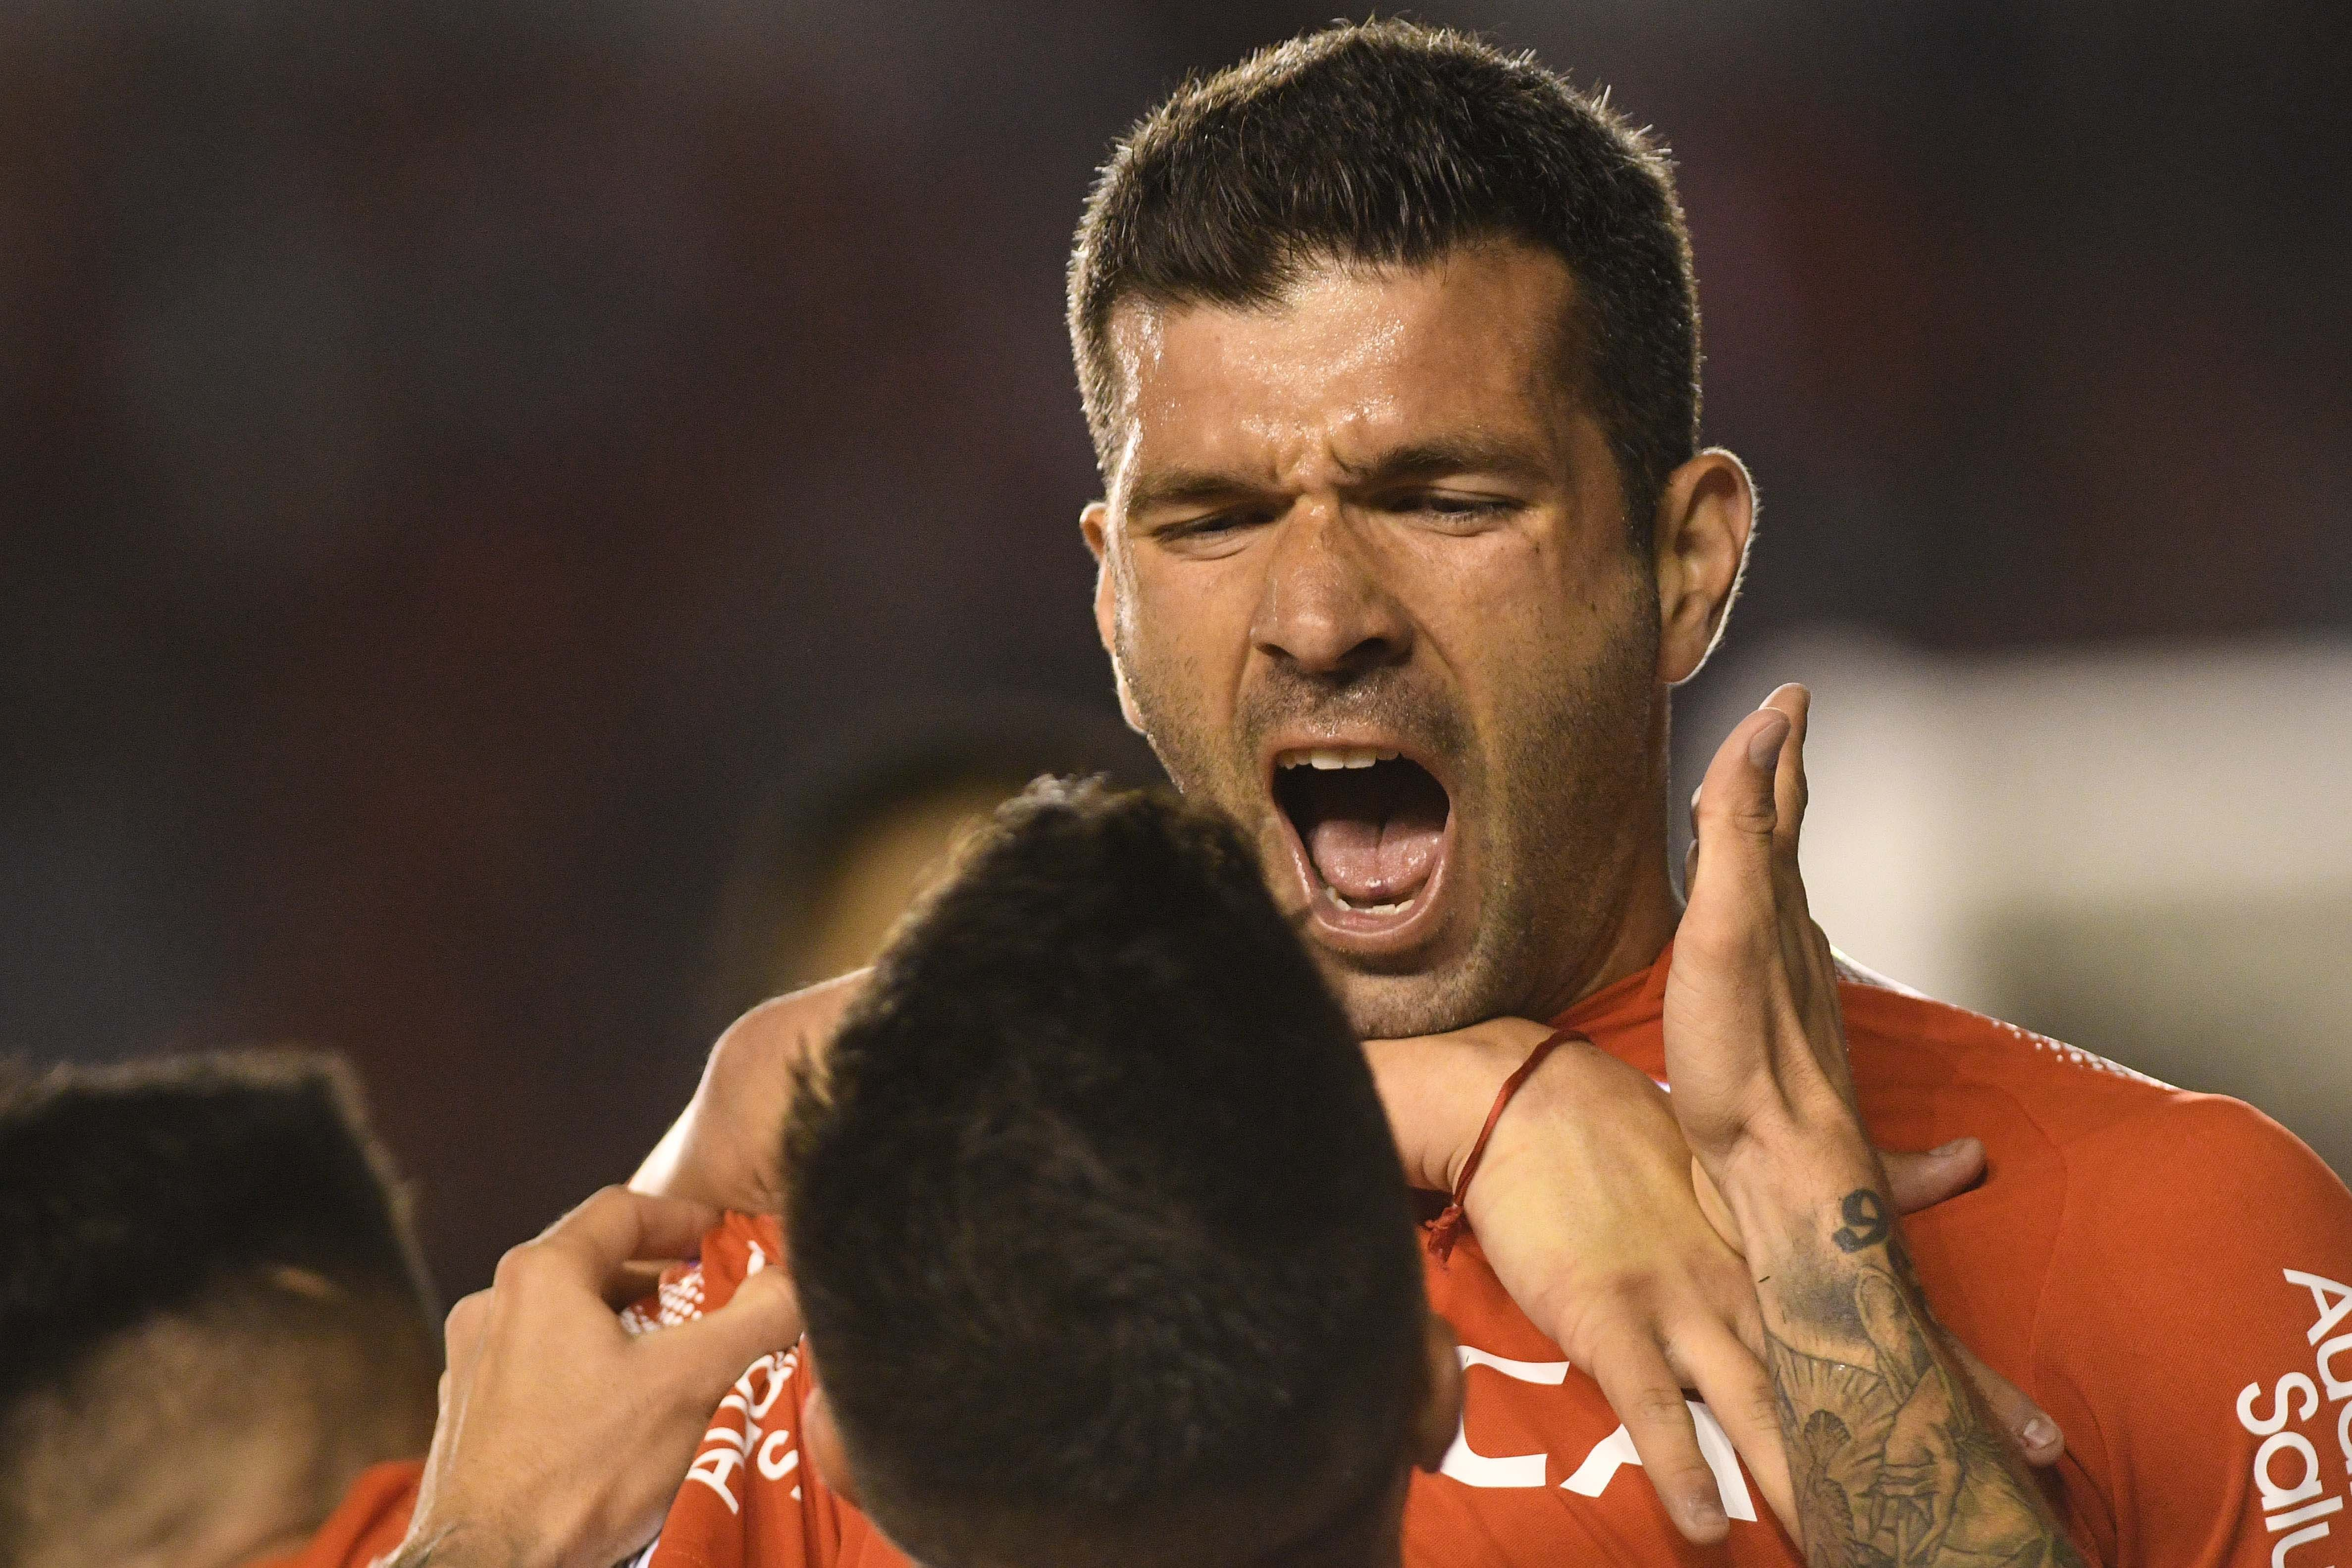 San Martín de San Juan vs Independiente: formaciones, horario y TV